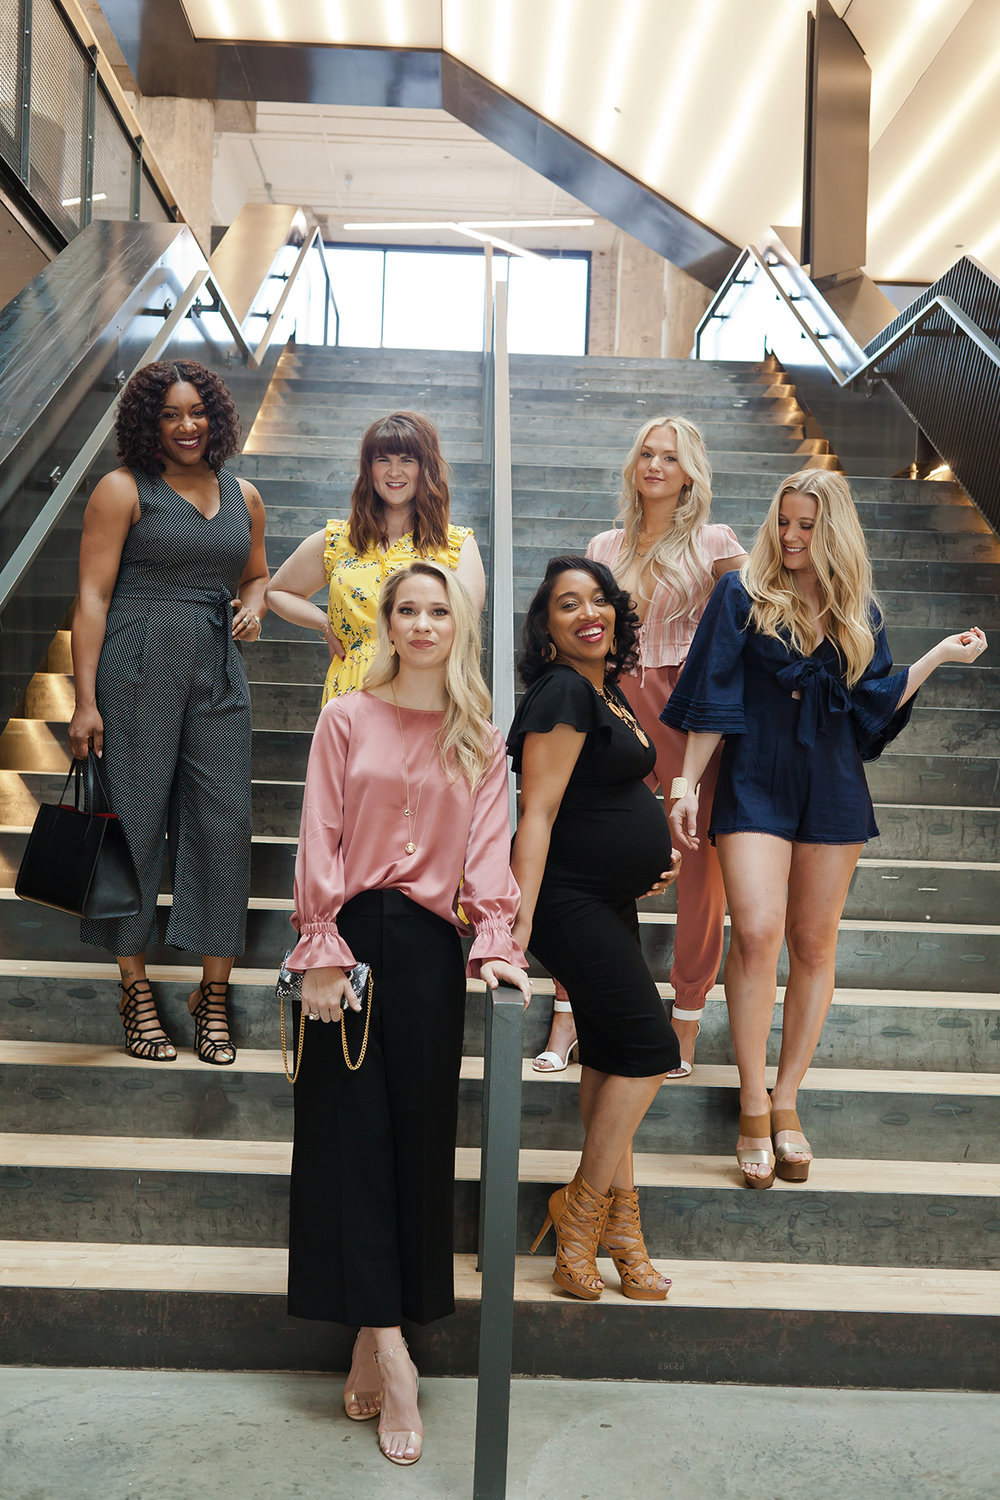 Andrea Fenise Memphis Fashion Blogger and Memphis Fashion Bloggers shares why it is important to work while pregnant